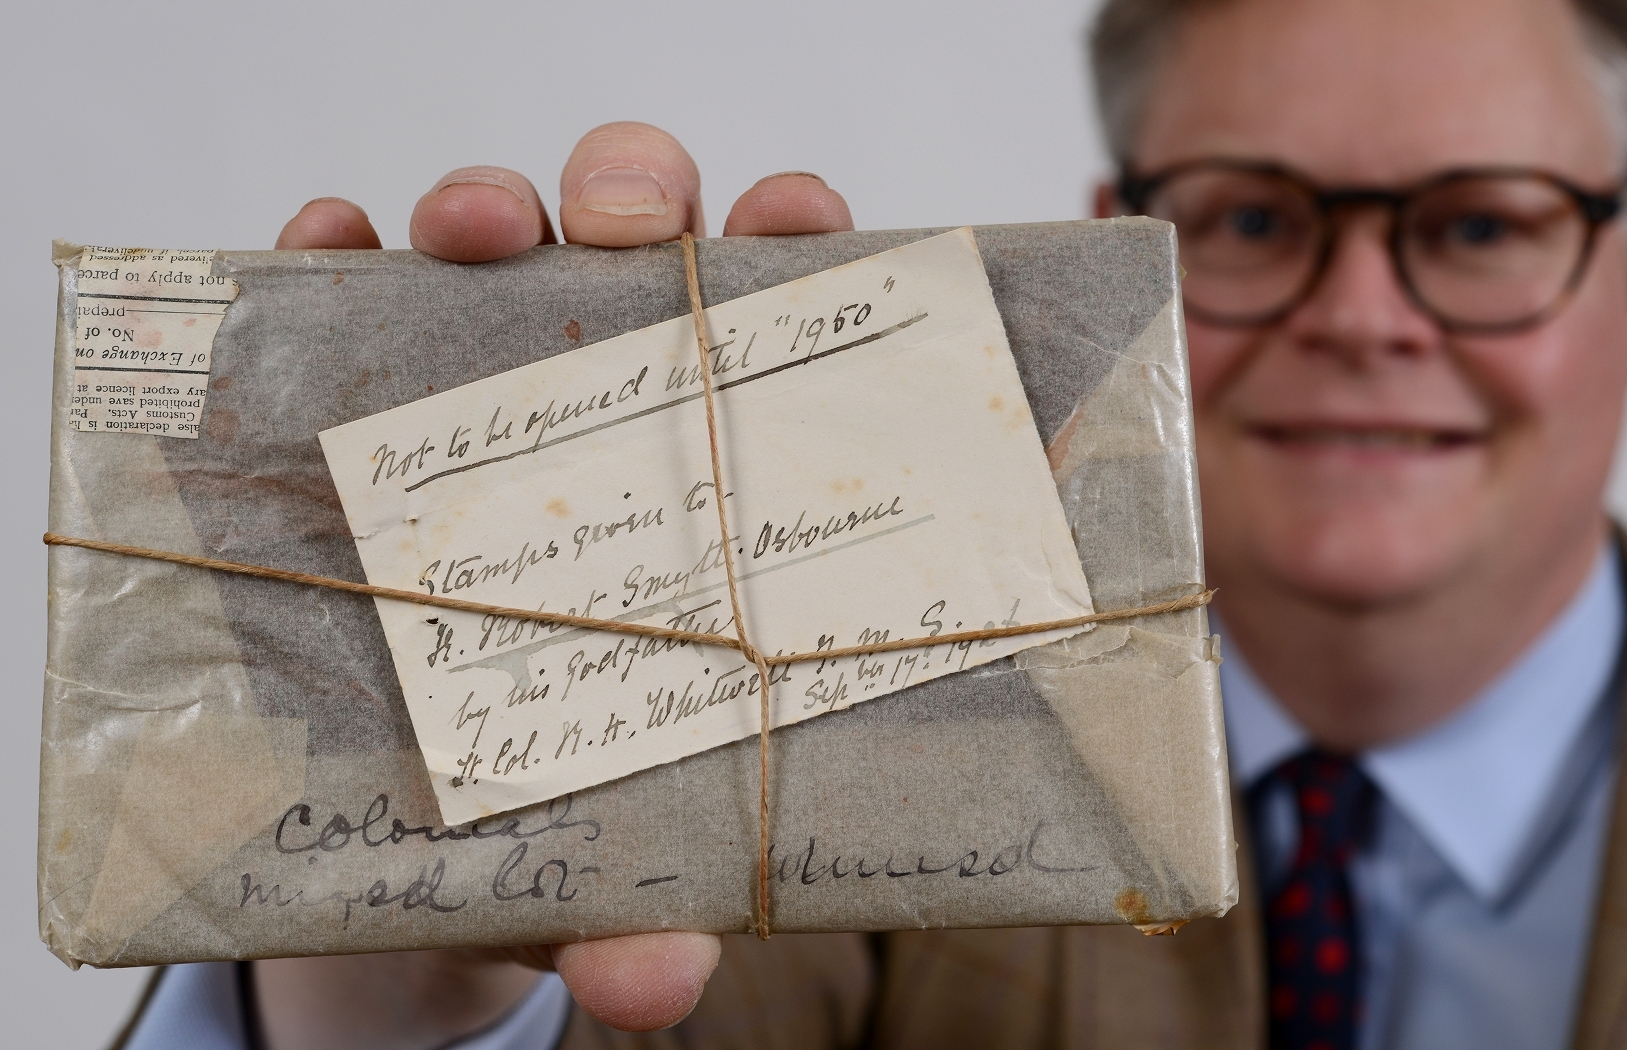 SEALED: Richard Bromell with an unopened packet of stamps, put away in a bank vault in 1926 and now opened in 2018